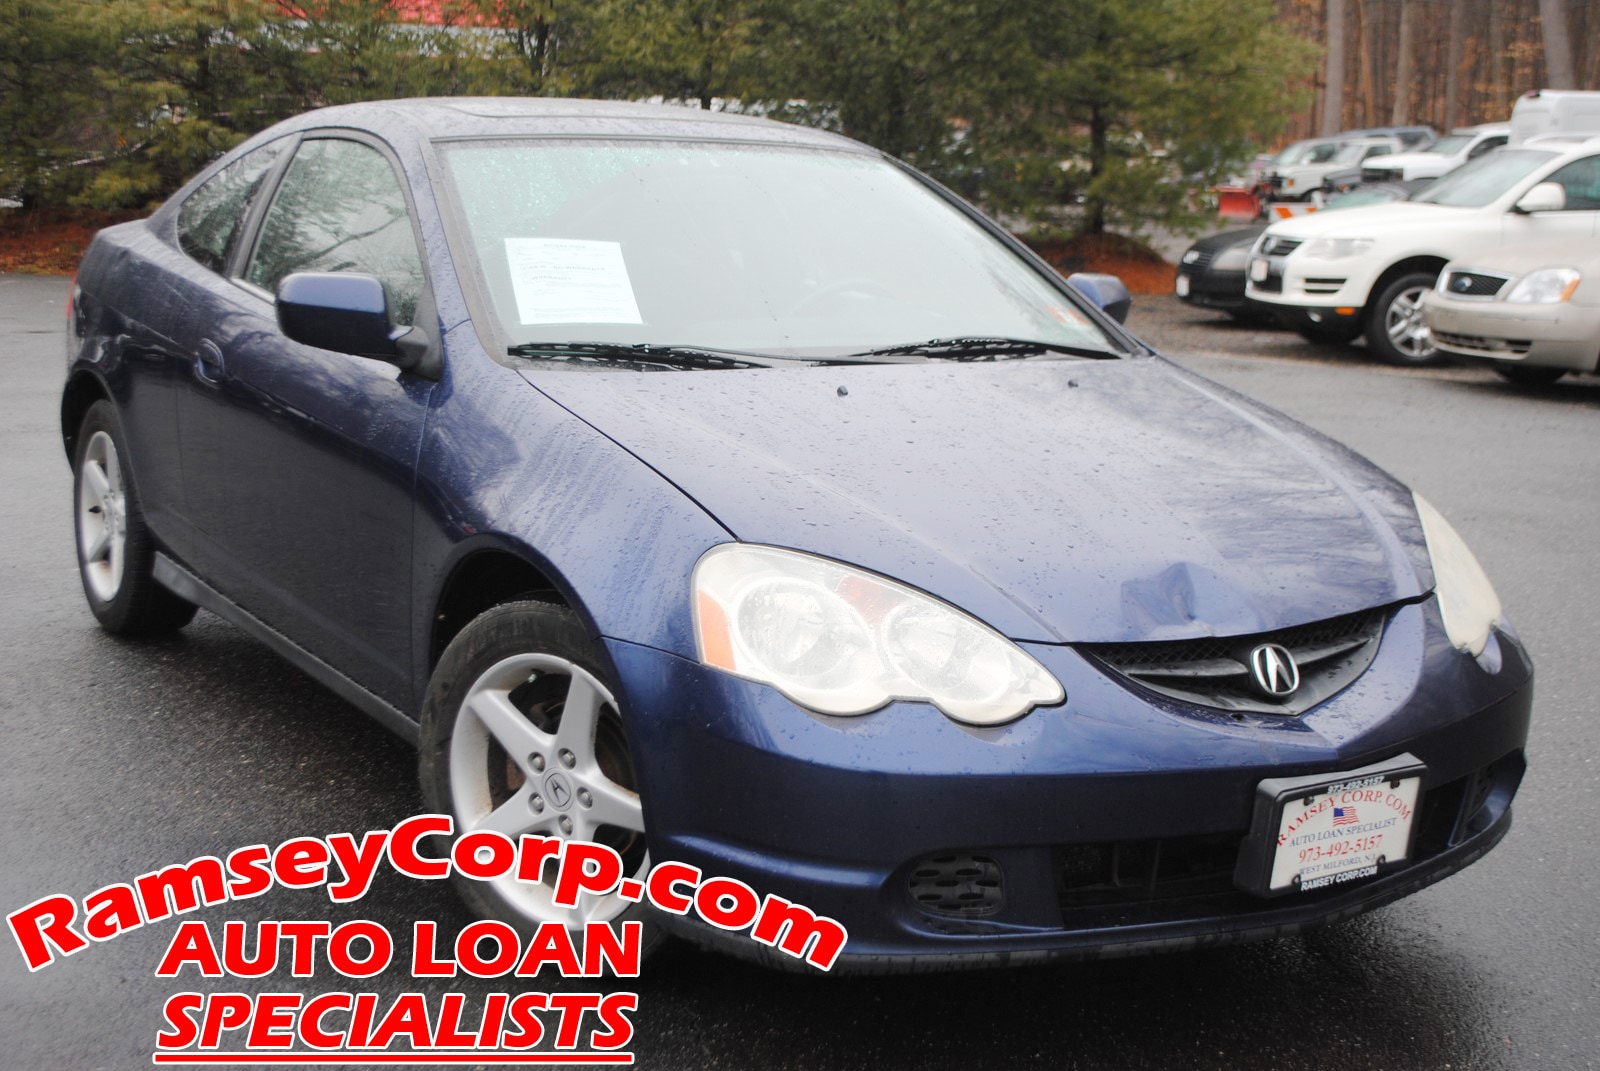 2004 Acura RSX 2.0 Coupe